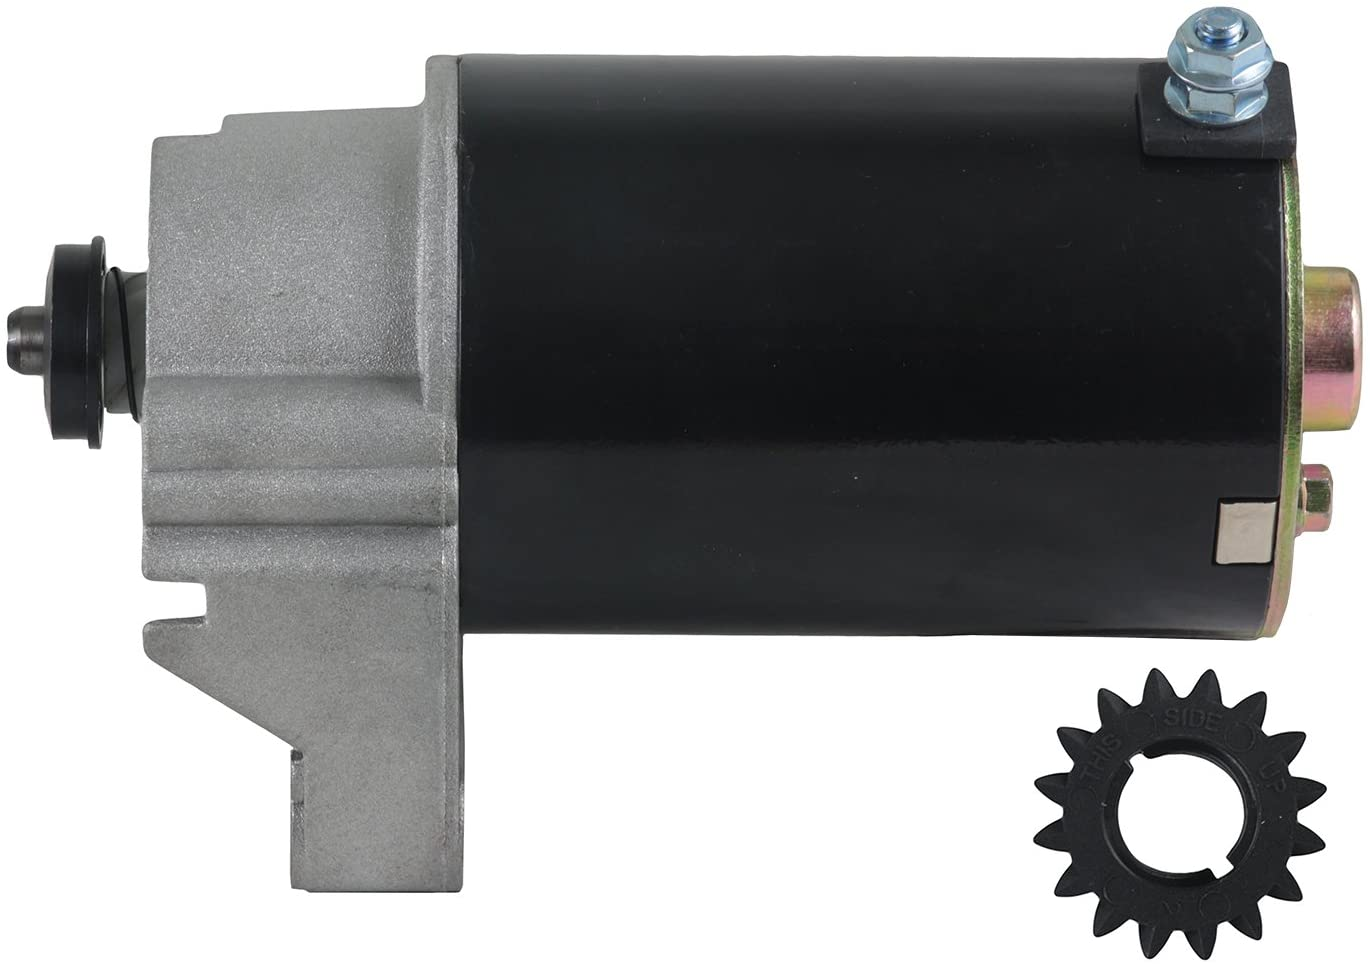 Rareelectrical NEW 16 TOOTH STARTER COMPATIBLE WITH BRIGGS AND STRATTON ENGINE 422435-0757-01 422435-1199-01